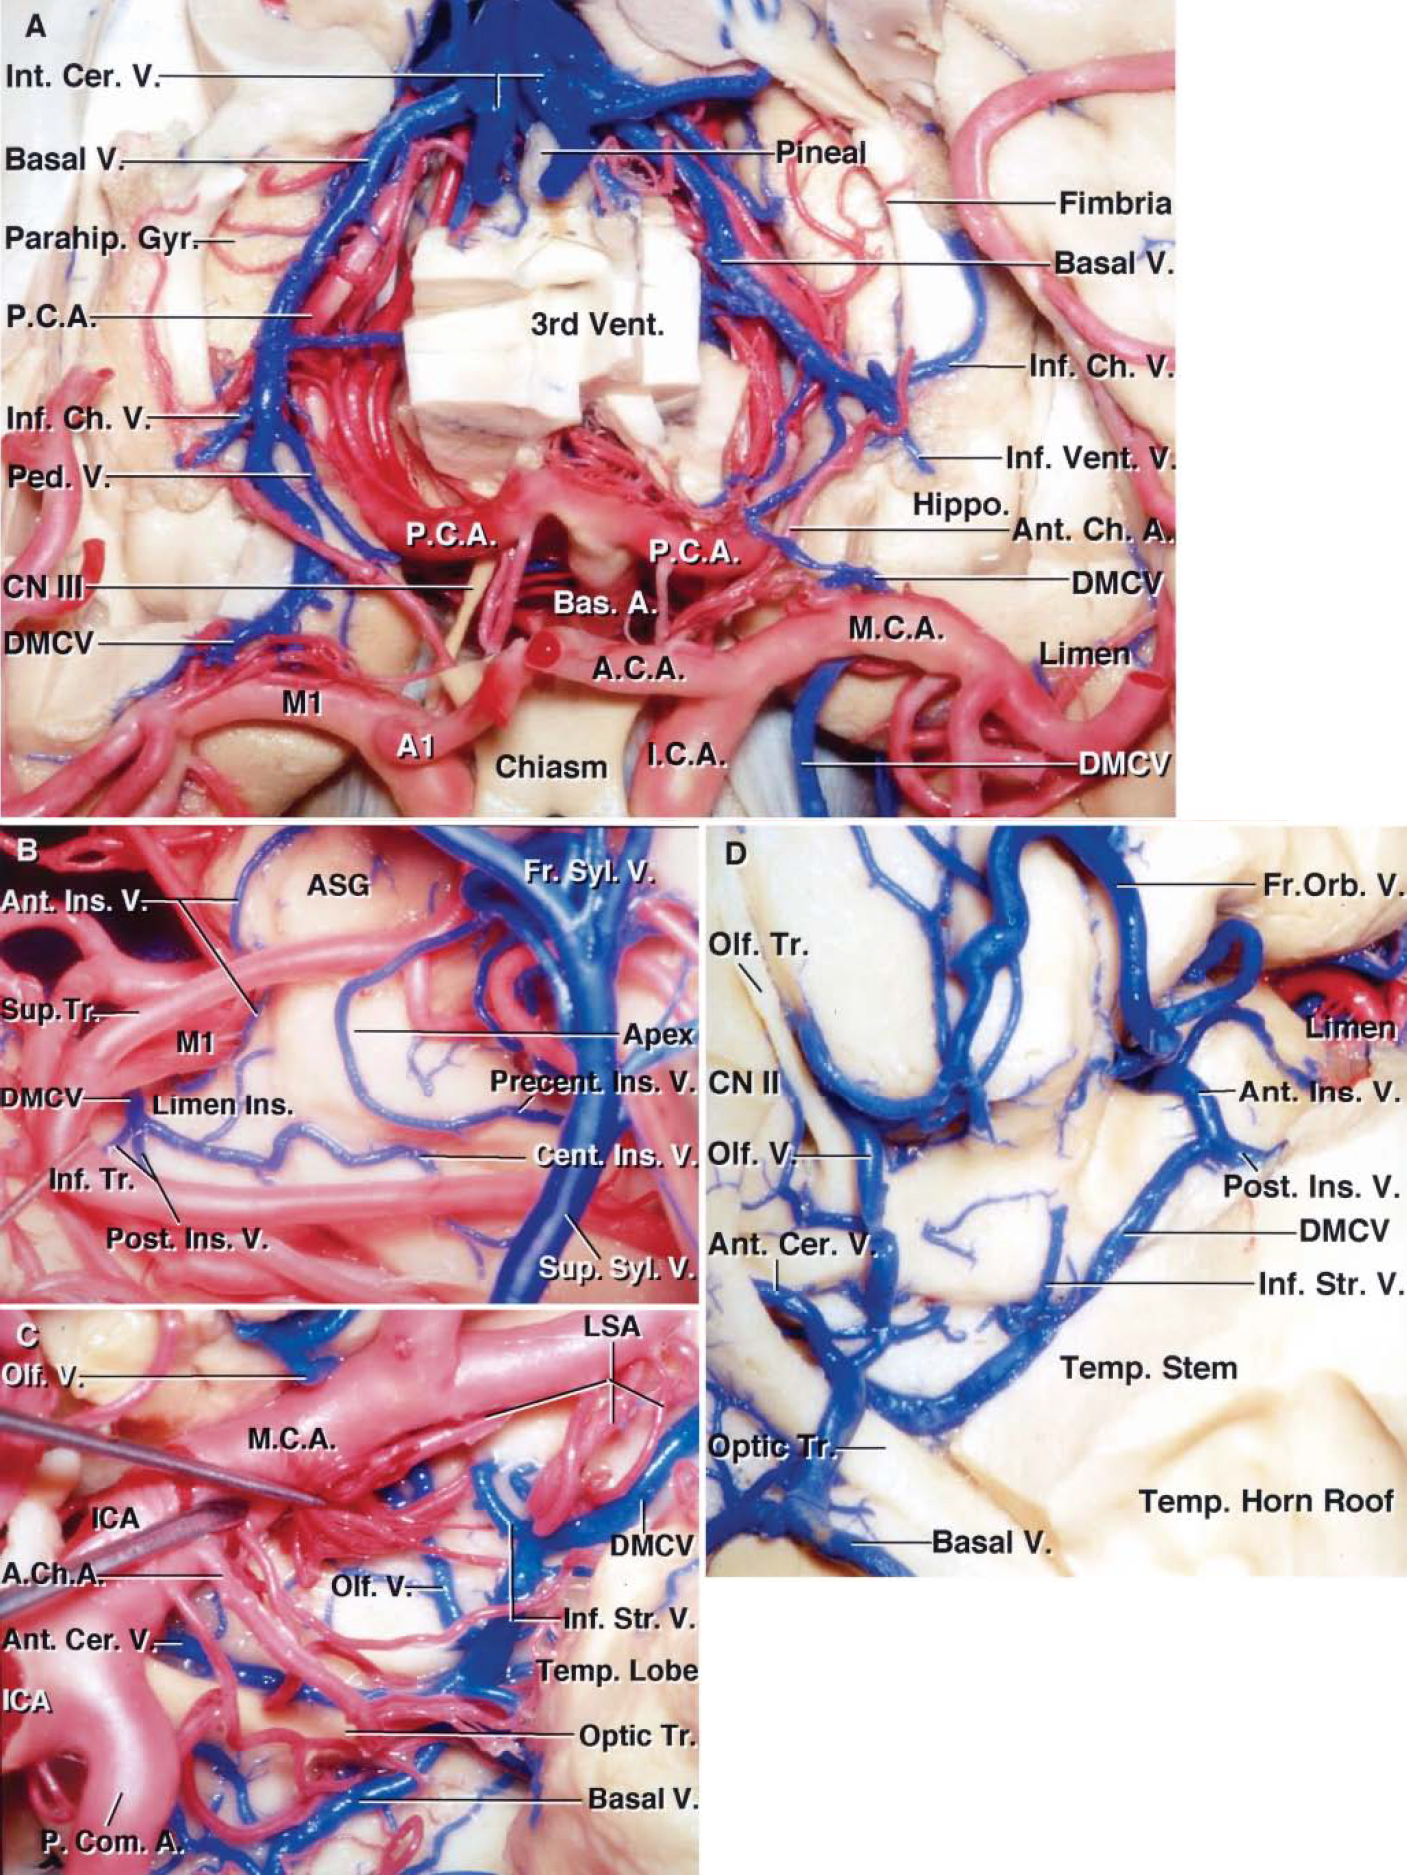 FIG. 11. Photographs obtained during cadaveric dissection, showing variations in the termination pattern of the deep MCV. A: Anterosuperior view. The anterior portions of both cerebral hemispheres have been removed to expose the temporal horns, basal cisterns, deep MCVs, basal veins, and PCAs. The PCAs arise from the basilar artery in the interpeduncular cistern and pass around the brainstem. The anterior choroidal arteries course around the left and right unci to reach the temporal horns. The right deep MCV passes around the limen area to join the basal vein. The right basal vein passes above the PCA in the crural and ambient cisterns. The anterior segment of the basal vein ends where the peduncular vein joins the basal vein at the anterolateral portion of the cerebral peduncle. The inferior choroidal vein joins the basal vein at the posterior edge of the cerebral peduncle. On the left side, the anterior segment of the basal vein is hypoplastic and the deep MCV courses below the M1segment and empties into the sphenoparietal sinus along the sphenoid ridge. The middle segment of the basal vein passes around the brainstem above the PCA and is joined by the inferior ventricular and choroidal veins. Both basal veins join the vein of Galen in the quadrigeminal cistern. Views of the deep MCV draining into a left basal vein (B and C). B: Lateral view of the anteroinferior portion of the left insula. The frontoparietal and temporal opercula have been retracted. The MCA bifurcation has been retracted anteriorly to expose the insular veins. The precentral insular vein joins the SSV. The central and posterior insular veins join at the limen insulae to form the deep MCV. The anterior insular vein courses near the anterior limiting sulcus and joins the deep MCV. C: Anteroinferior view of the anterior perforated substance of the left hemisphere shown in B. The prebifurcation M1segment and the LSAs have been retracted to expose the formation of the anterior segment of the basal ve